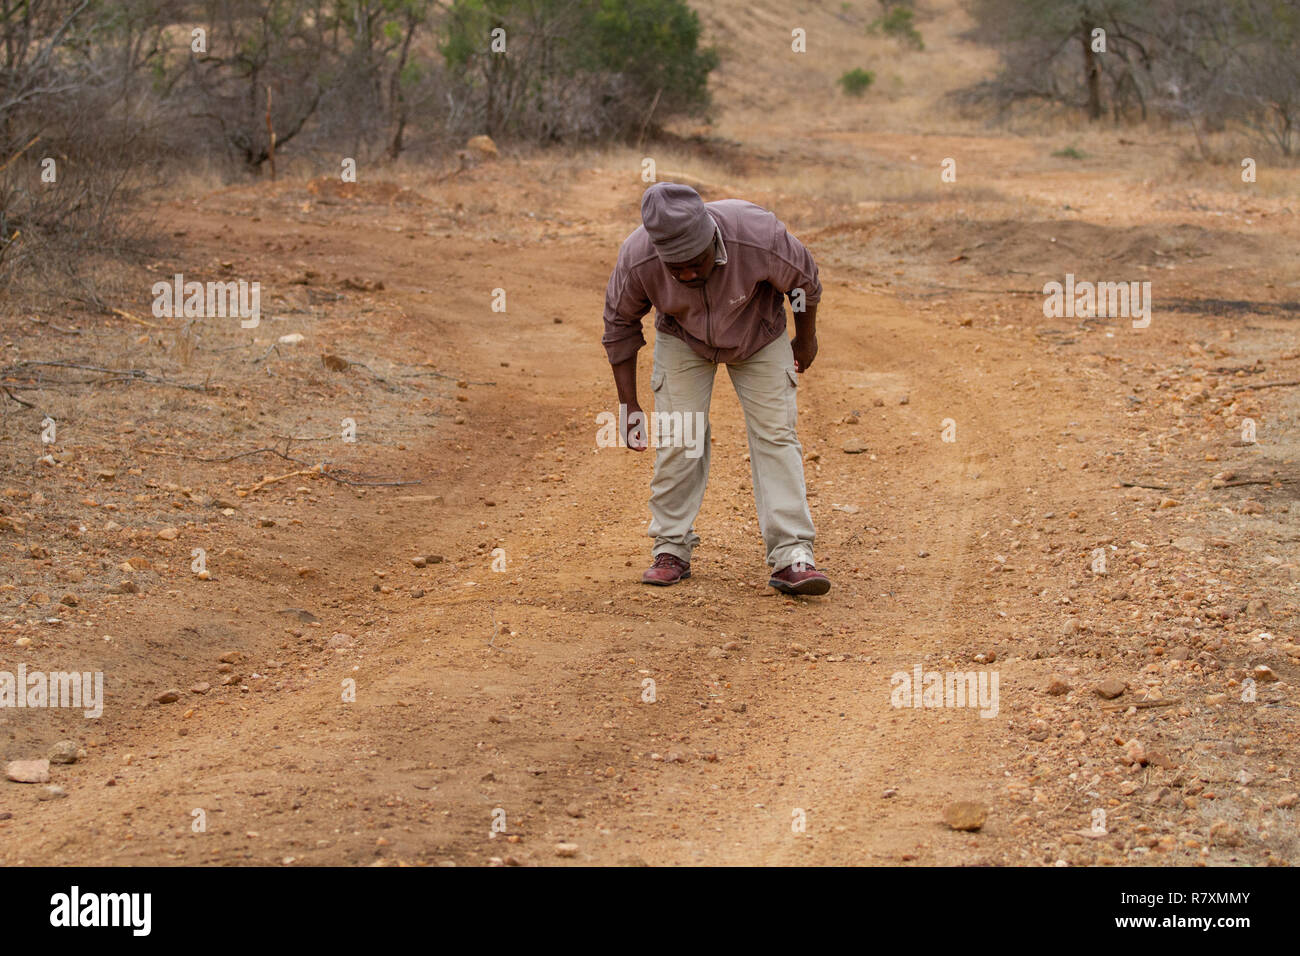 South Africa wildlife: tracker following the drag marks left by a leopard dragging its kill across the road - Stock Image